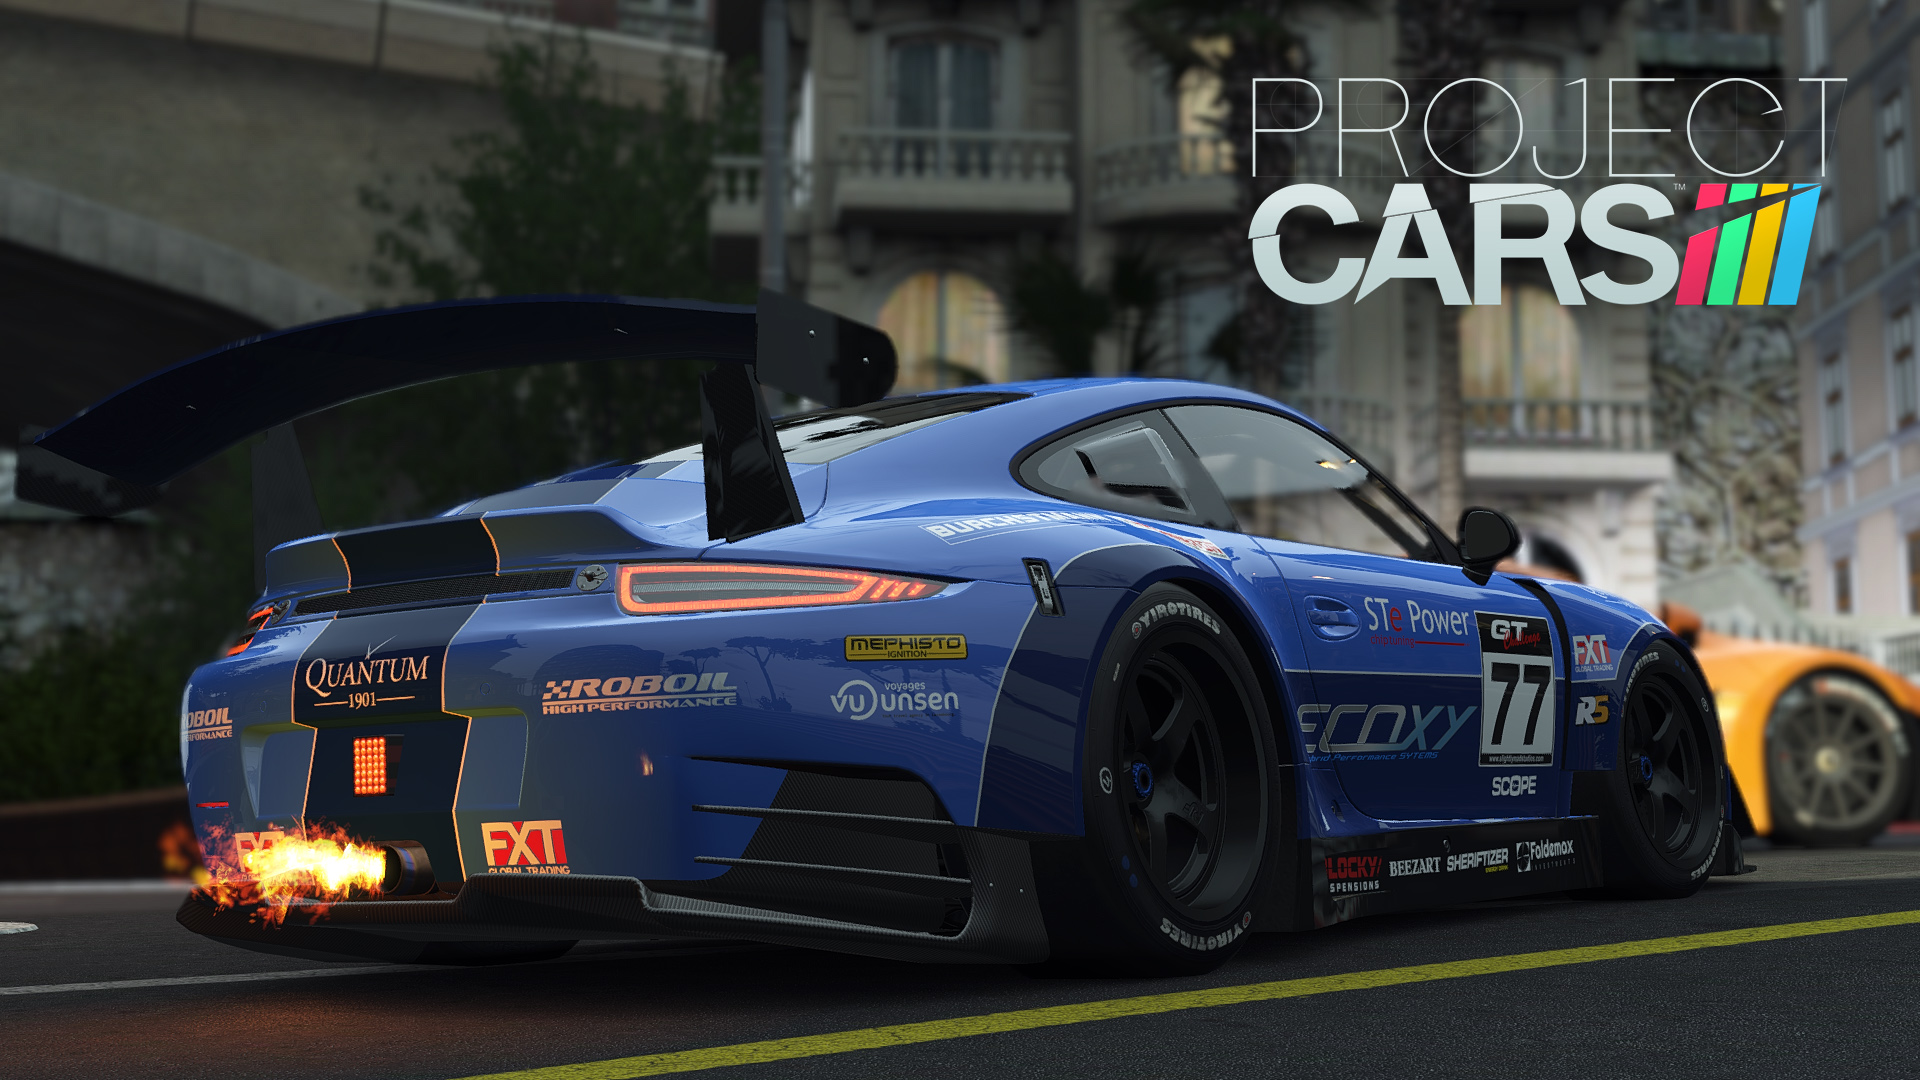 Project Cars 4.0